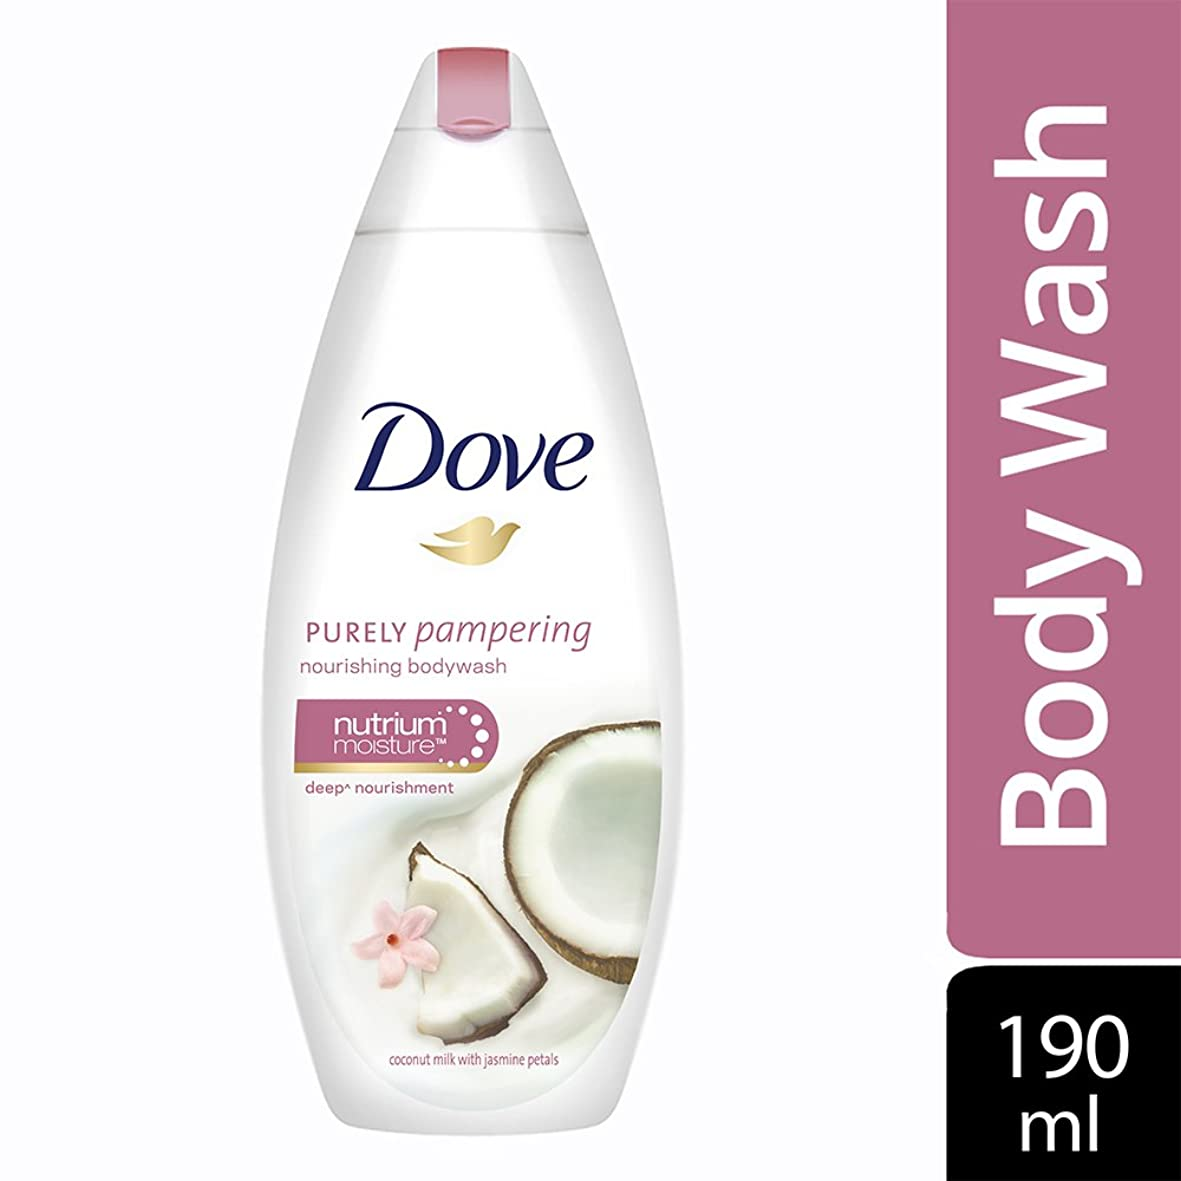 回転テープ静かにDove Purely Pampering Coconut Milk and Jas Petals Body Wash, 190ml